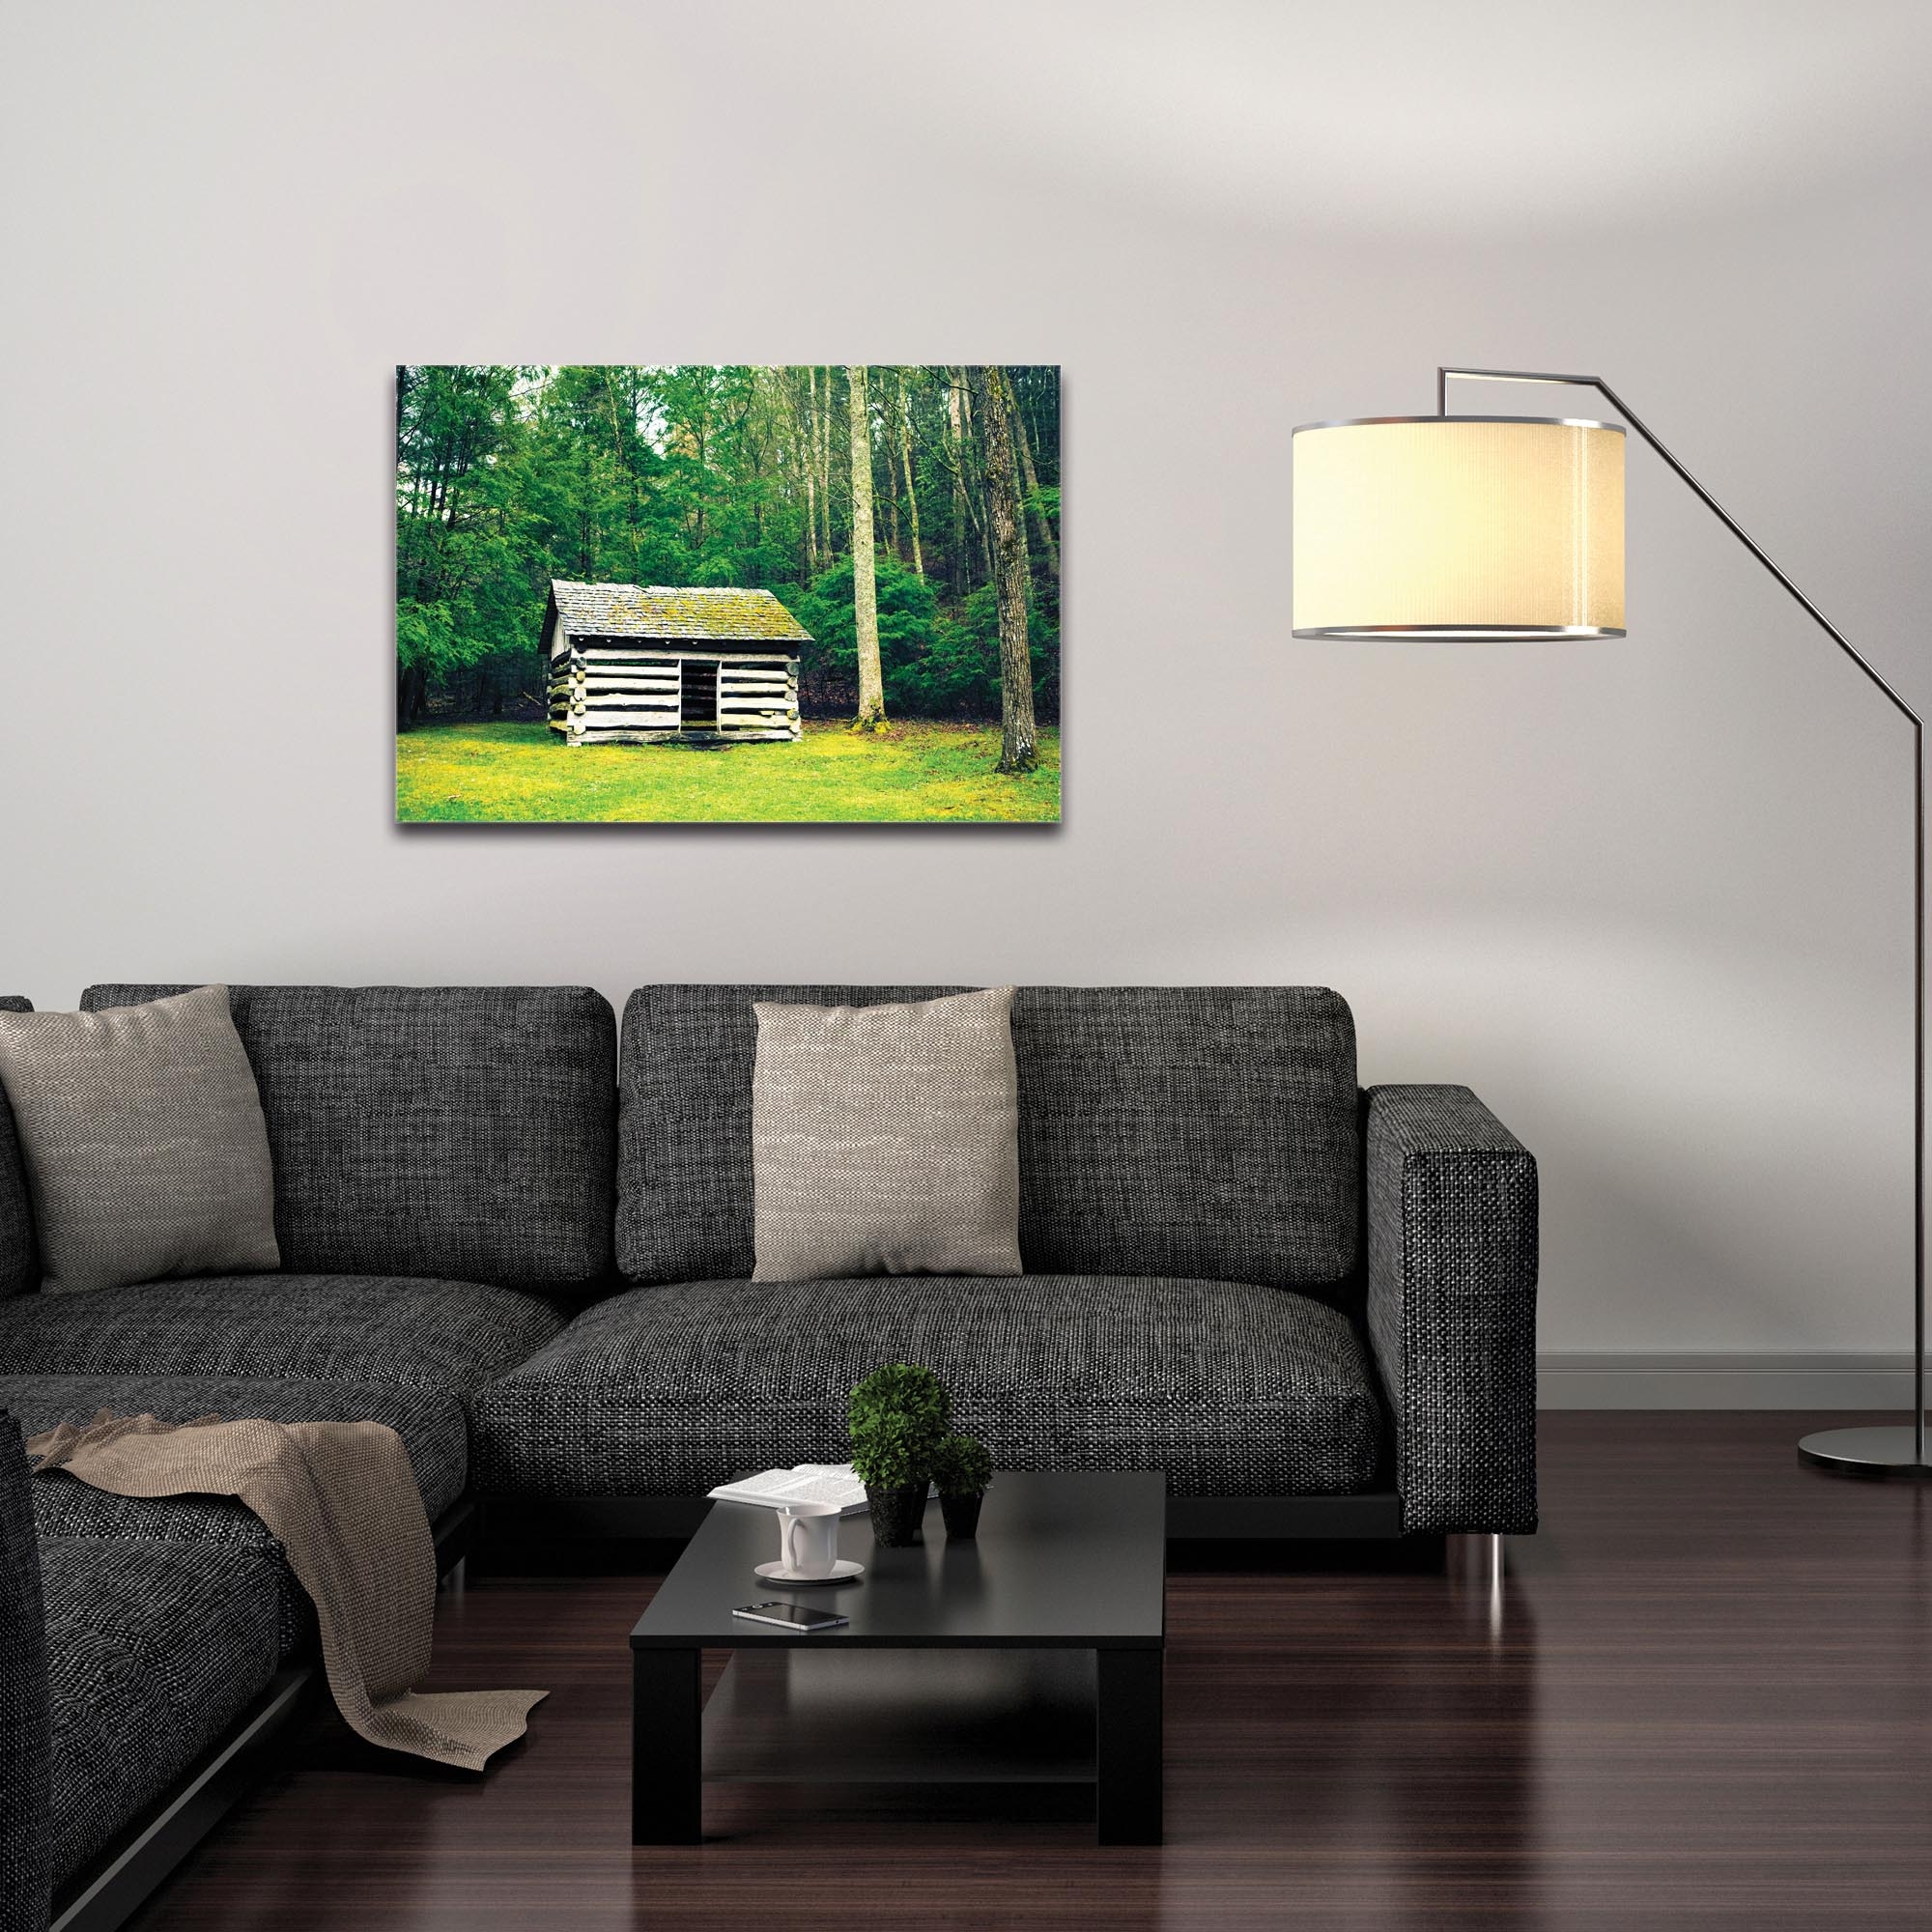 Western Wall Art 'The Cottage' - Farm Landscape Decor on Metal or Plexiglass - Image 3